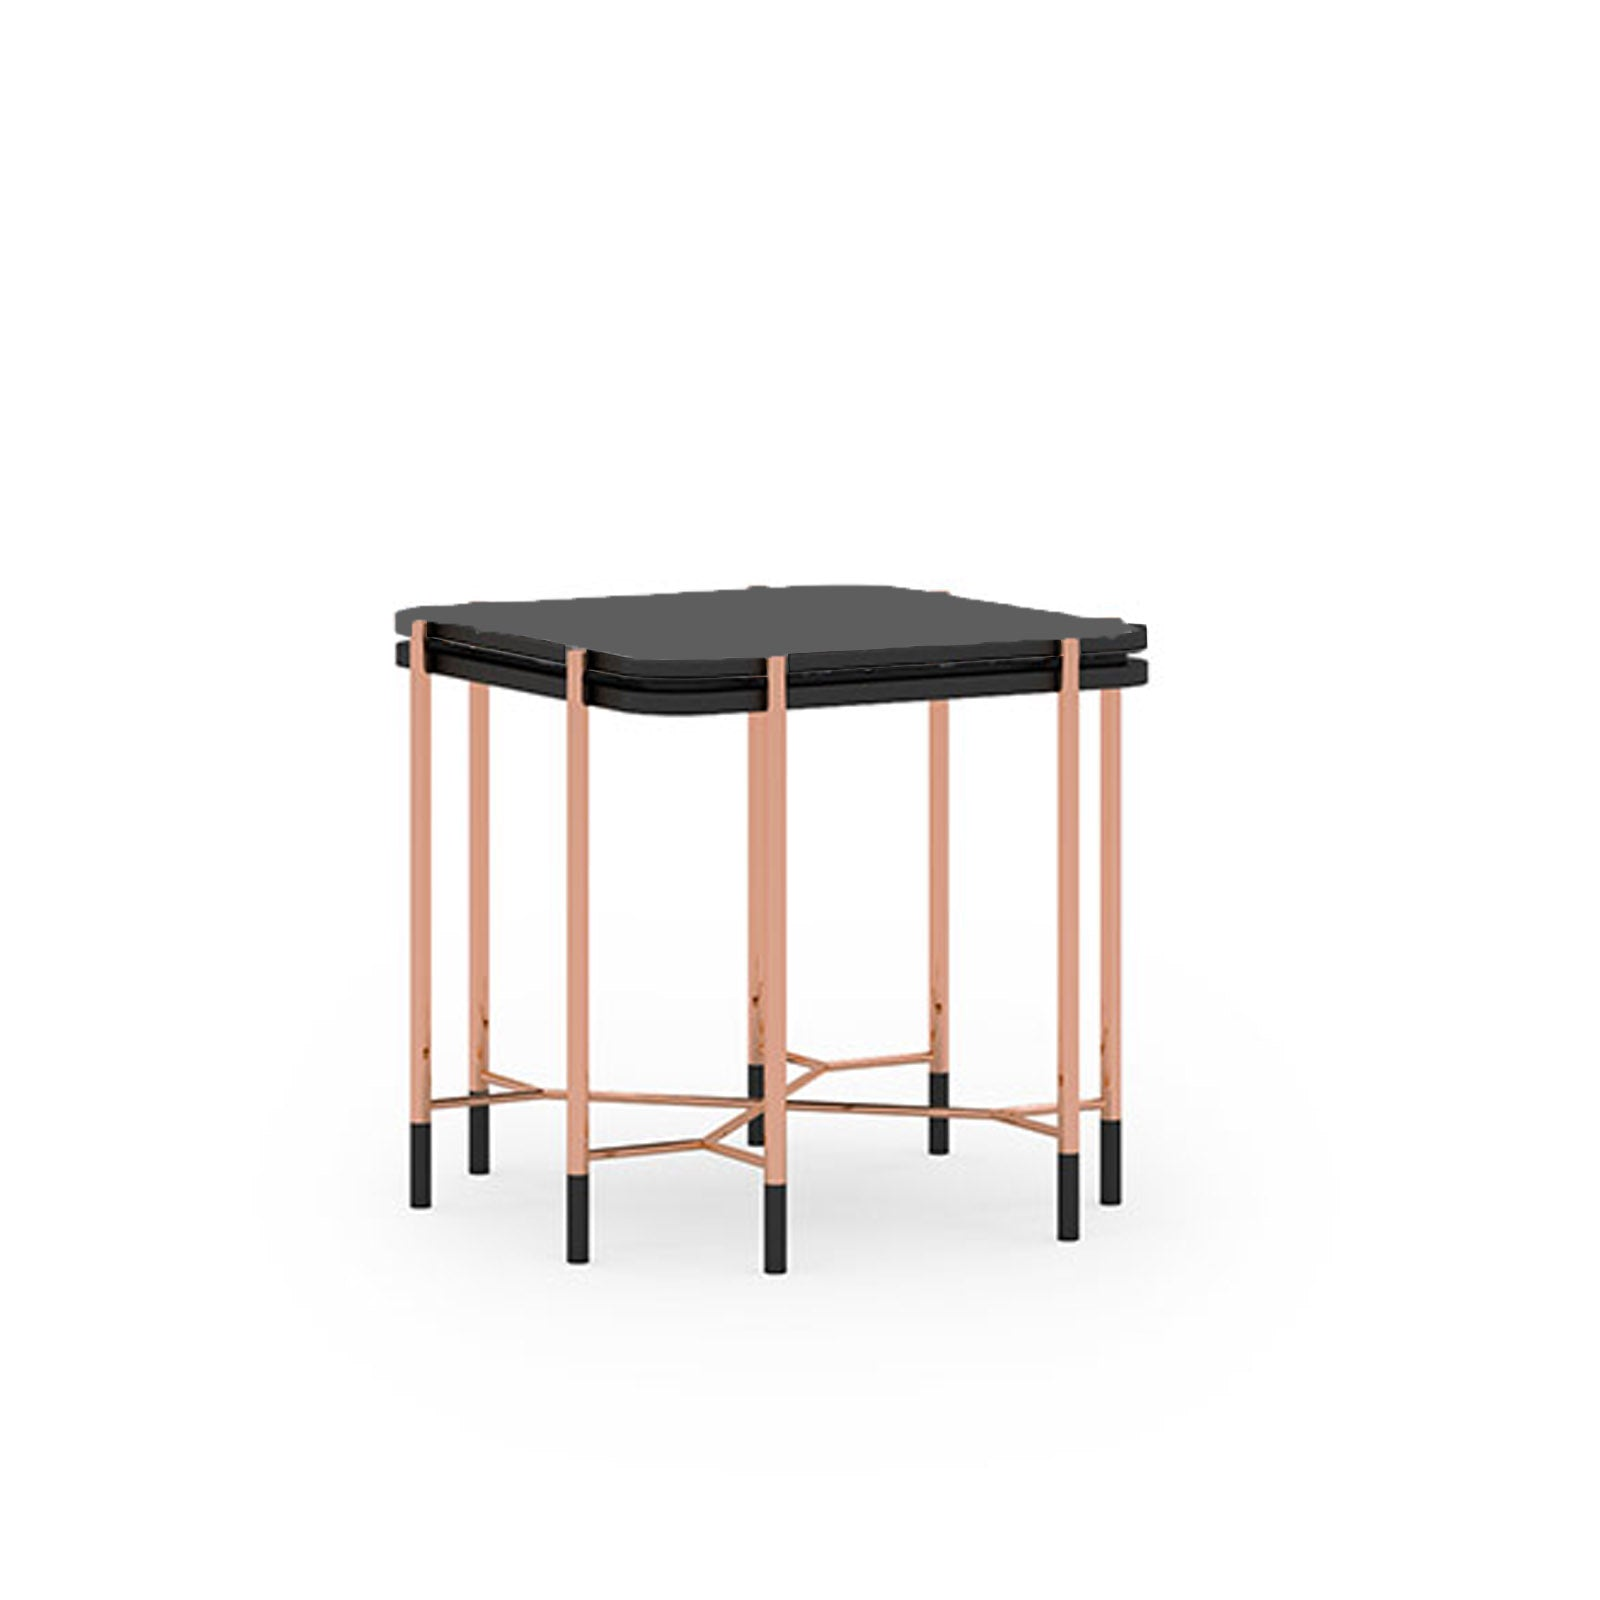 Pre-Order 40 days delivery Dali  side table  with glass top Dali-Side -  اطلب مسبقًا 60 يومًا منضدة دالي الجانبية ذات السطح الزجاجي - Shop Online Furniture and Home Decor Store in Dubai, UAE at ebarza